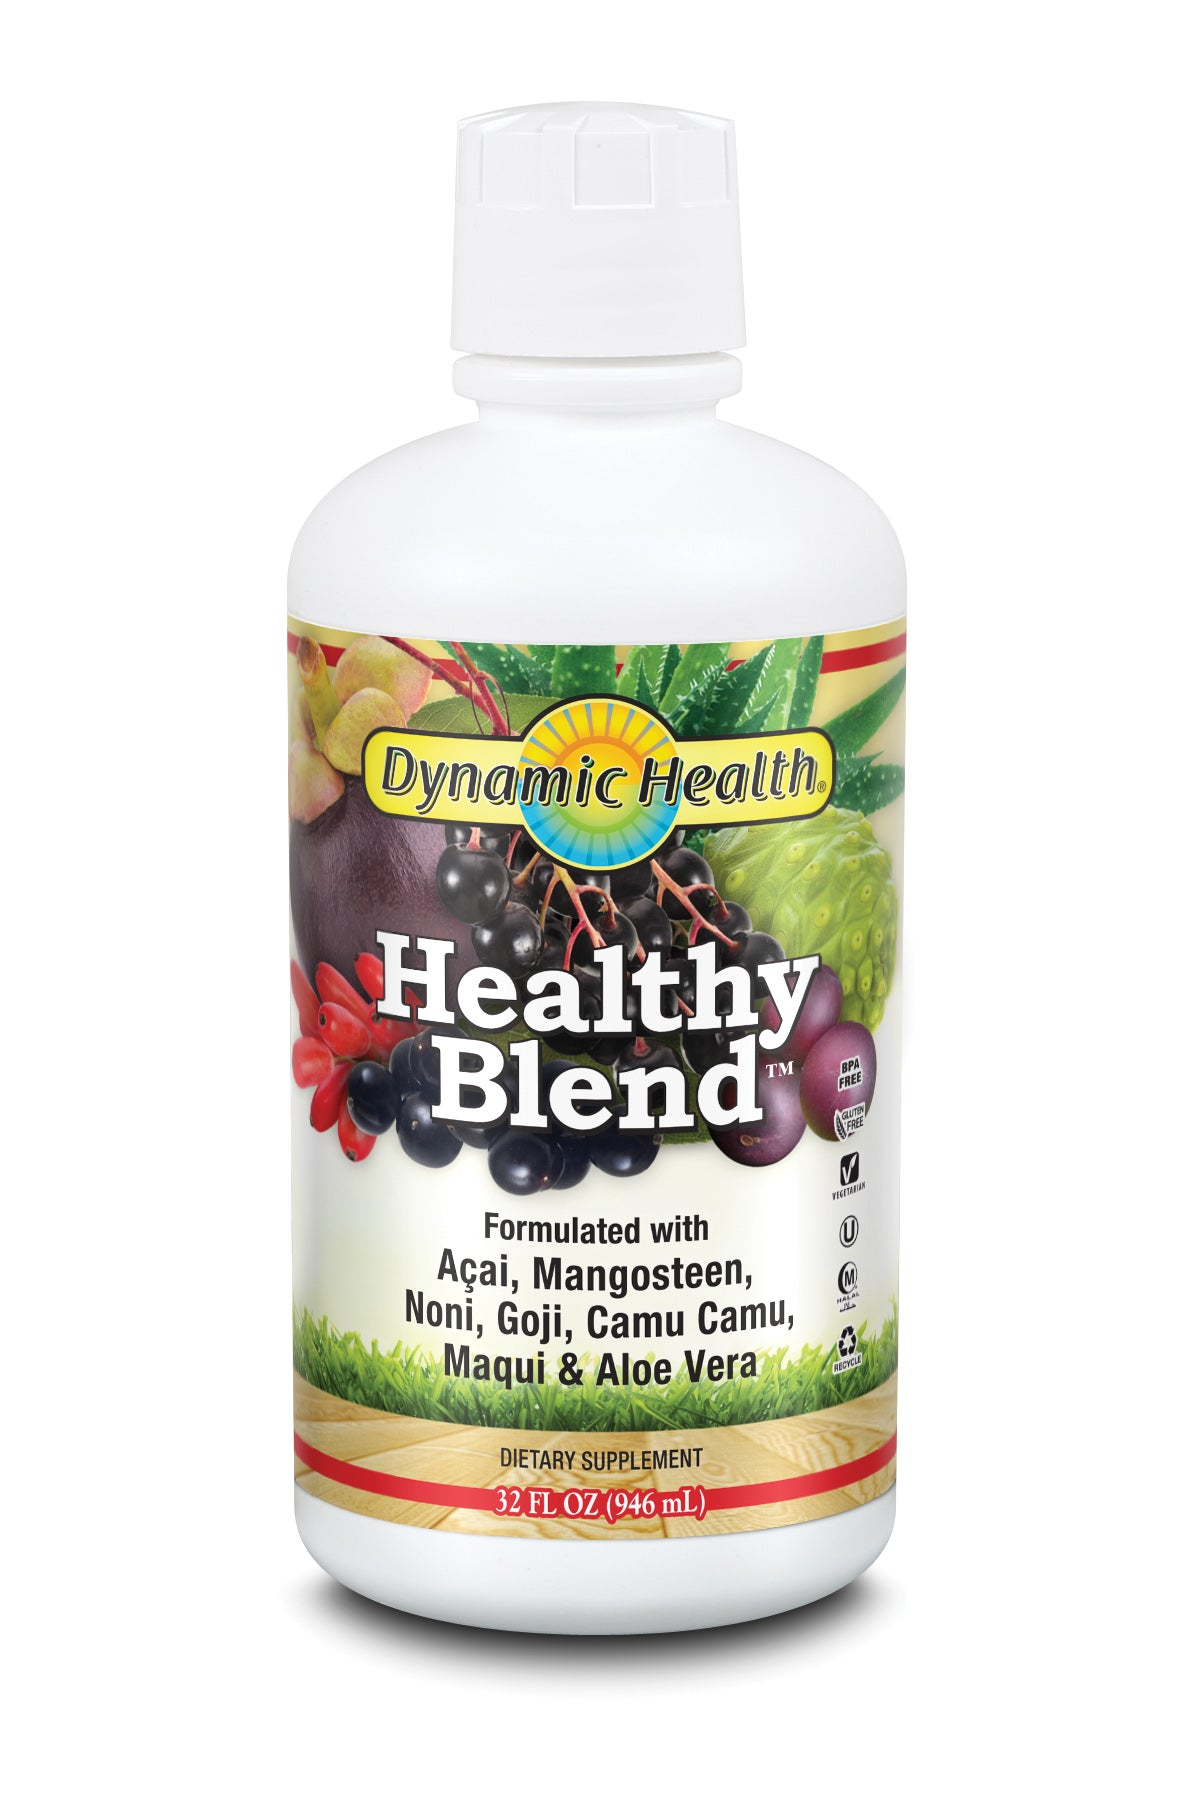 Healthy Blend - 32-Fl-Oz-(946-mL)